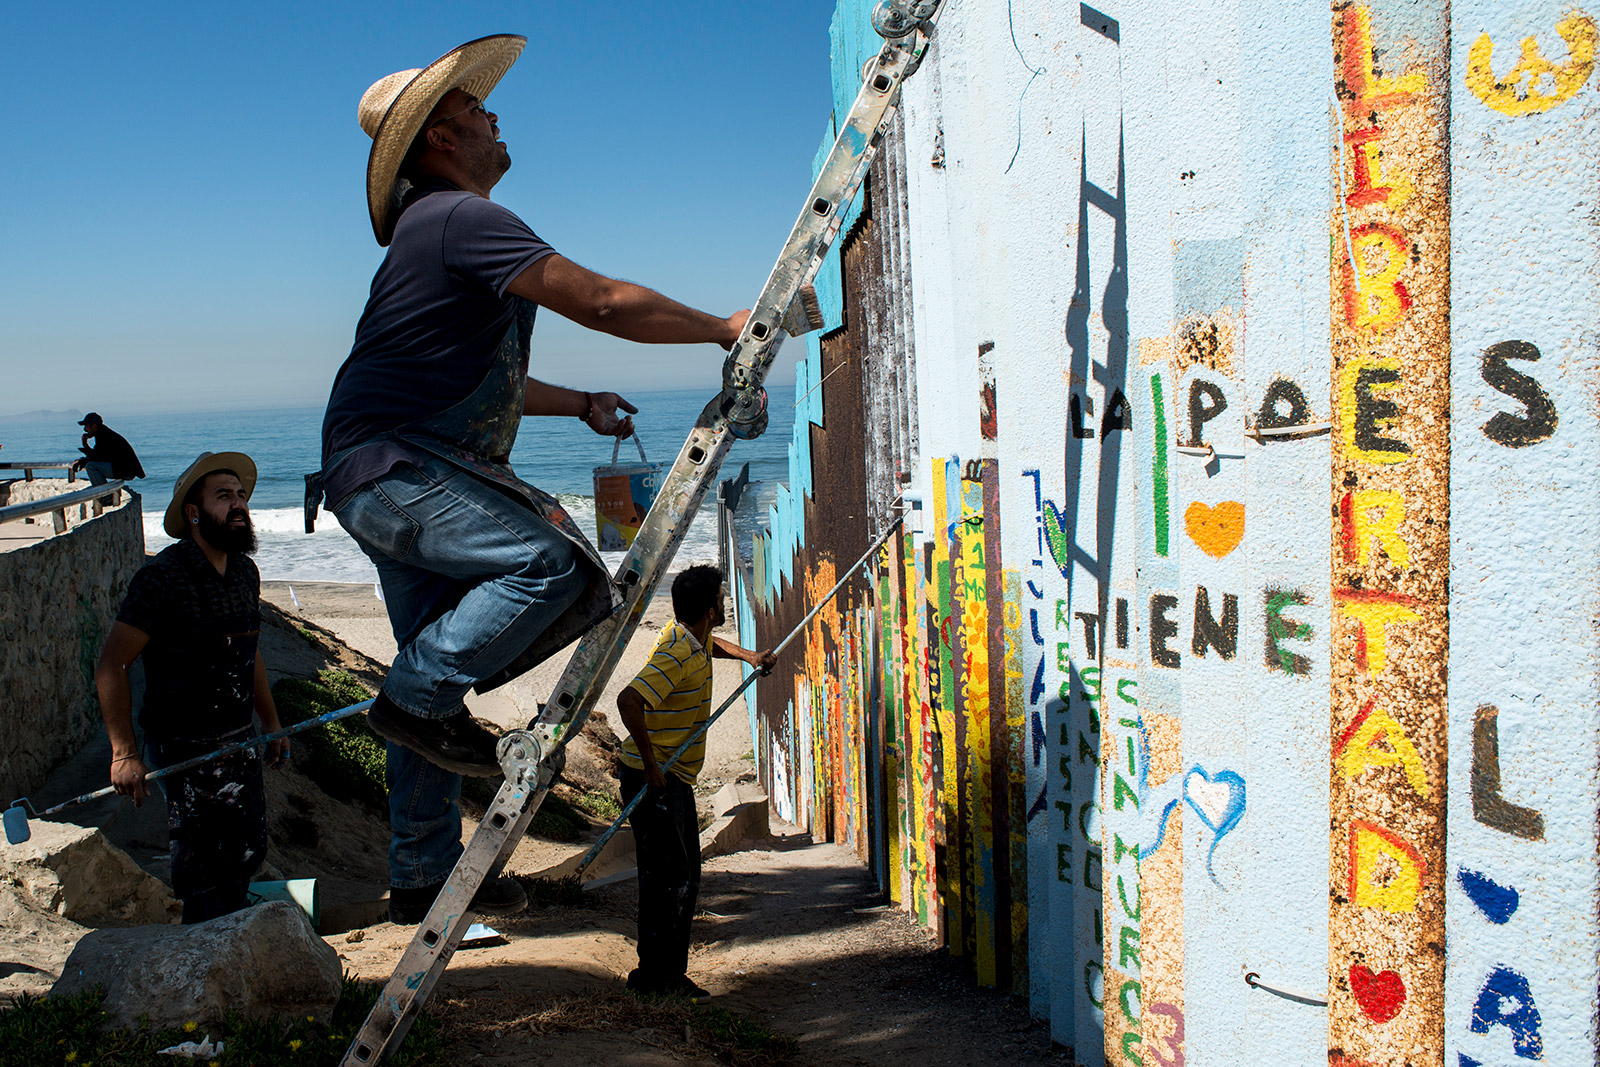 From left, Luis Marmolejo, Enrique Chiu and Sergio Tellez, begin painting sections of fencing along the U.S.-Mexico border at Friendship Park in Tijuana on Oct. 7, 2017. Chiu, a muralist, has worked for nearly a year to paint messages of hope in what could become the world's largest mural. <em>(Brandon Quester/inewsource)</em>